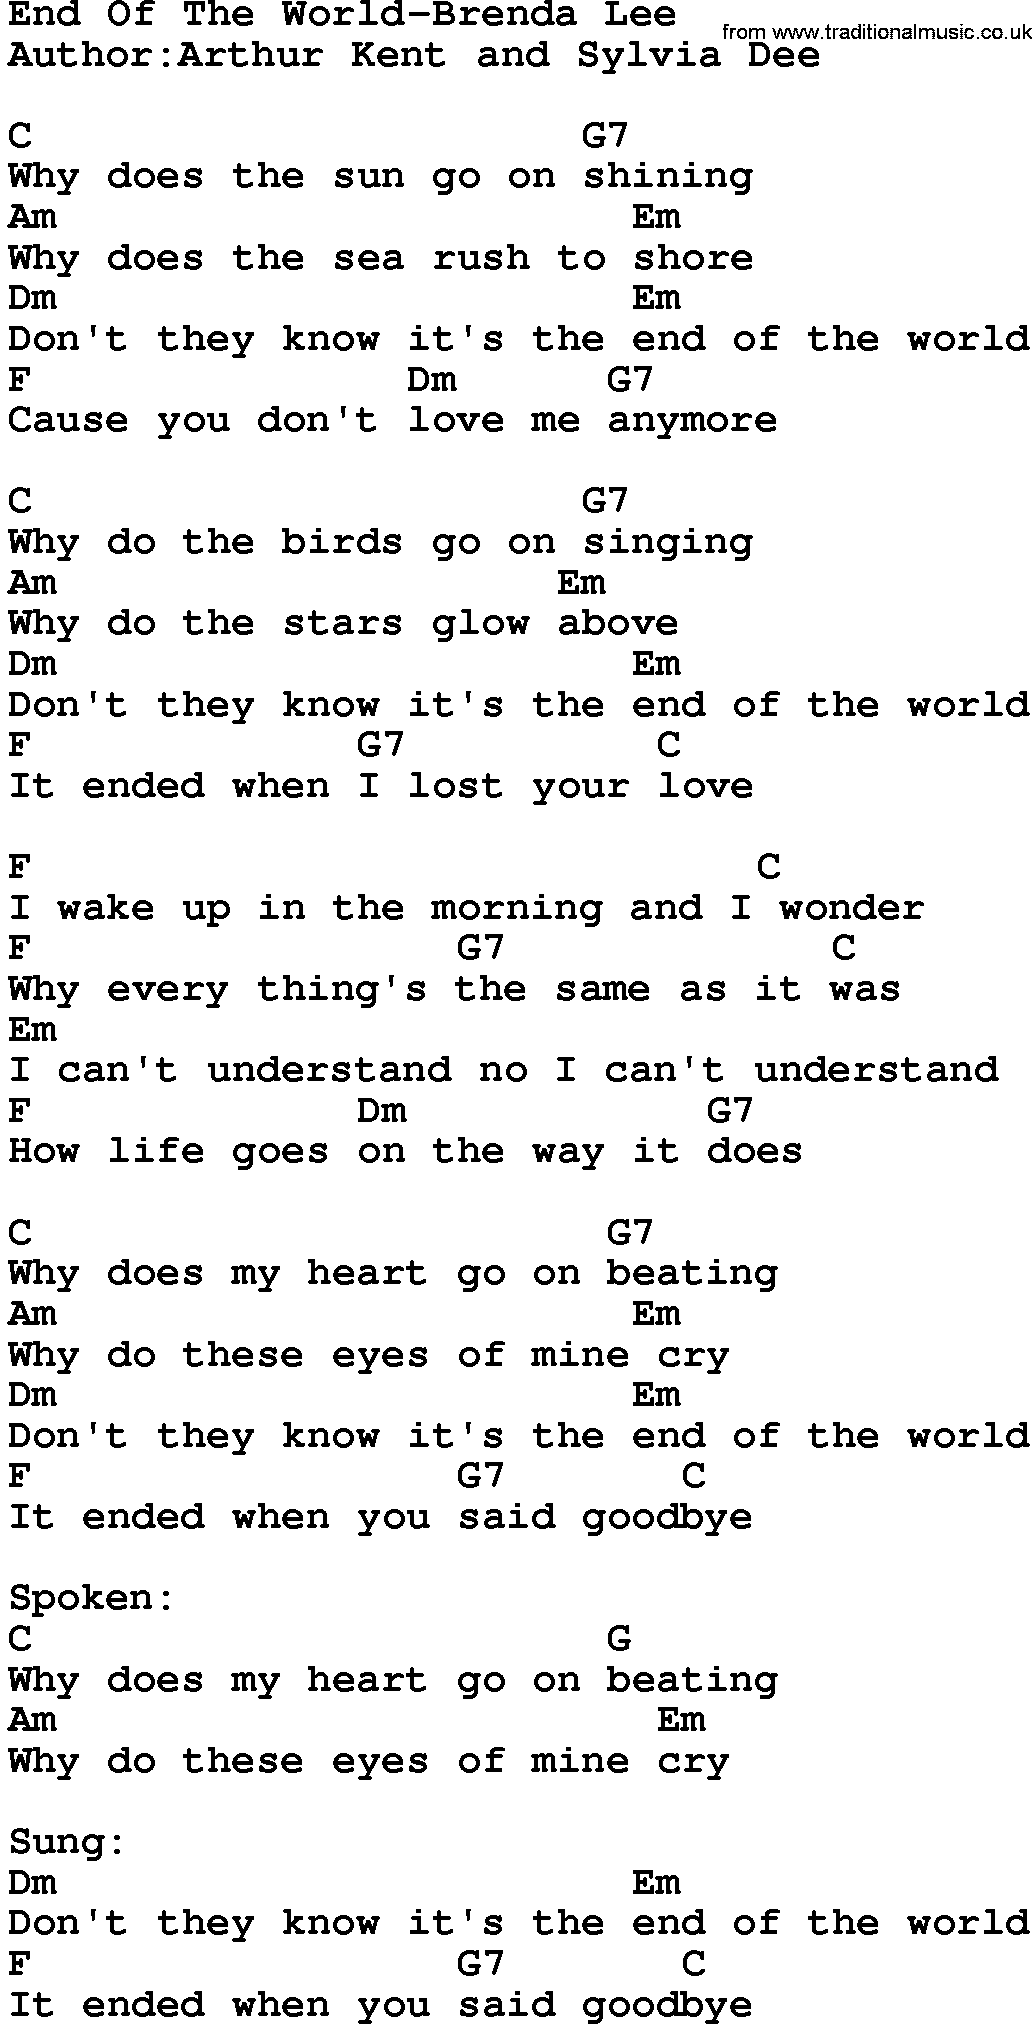 Country MusicEnd Of The World Brenda Lee Lyrics and Chords